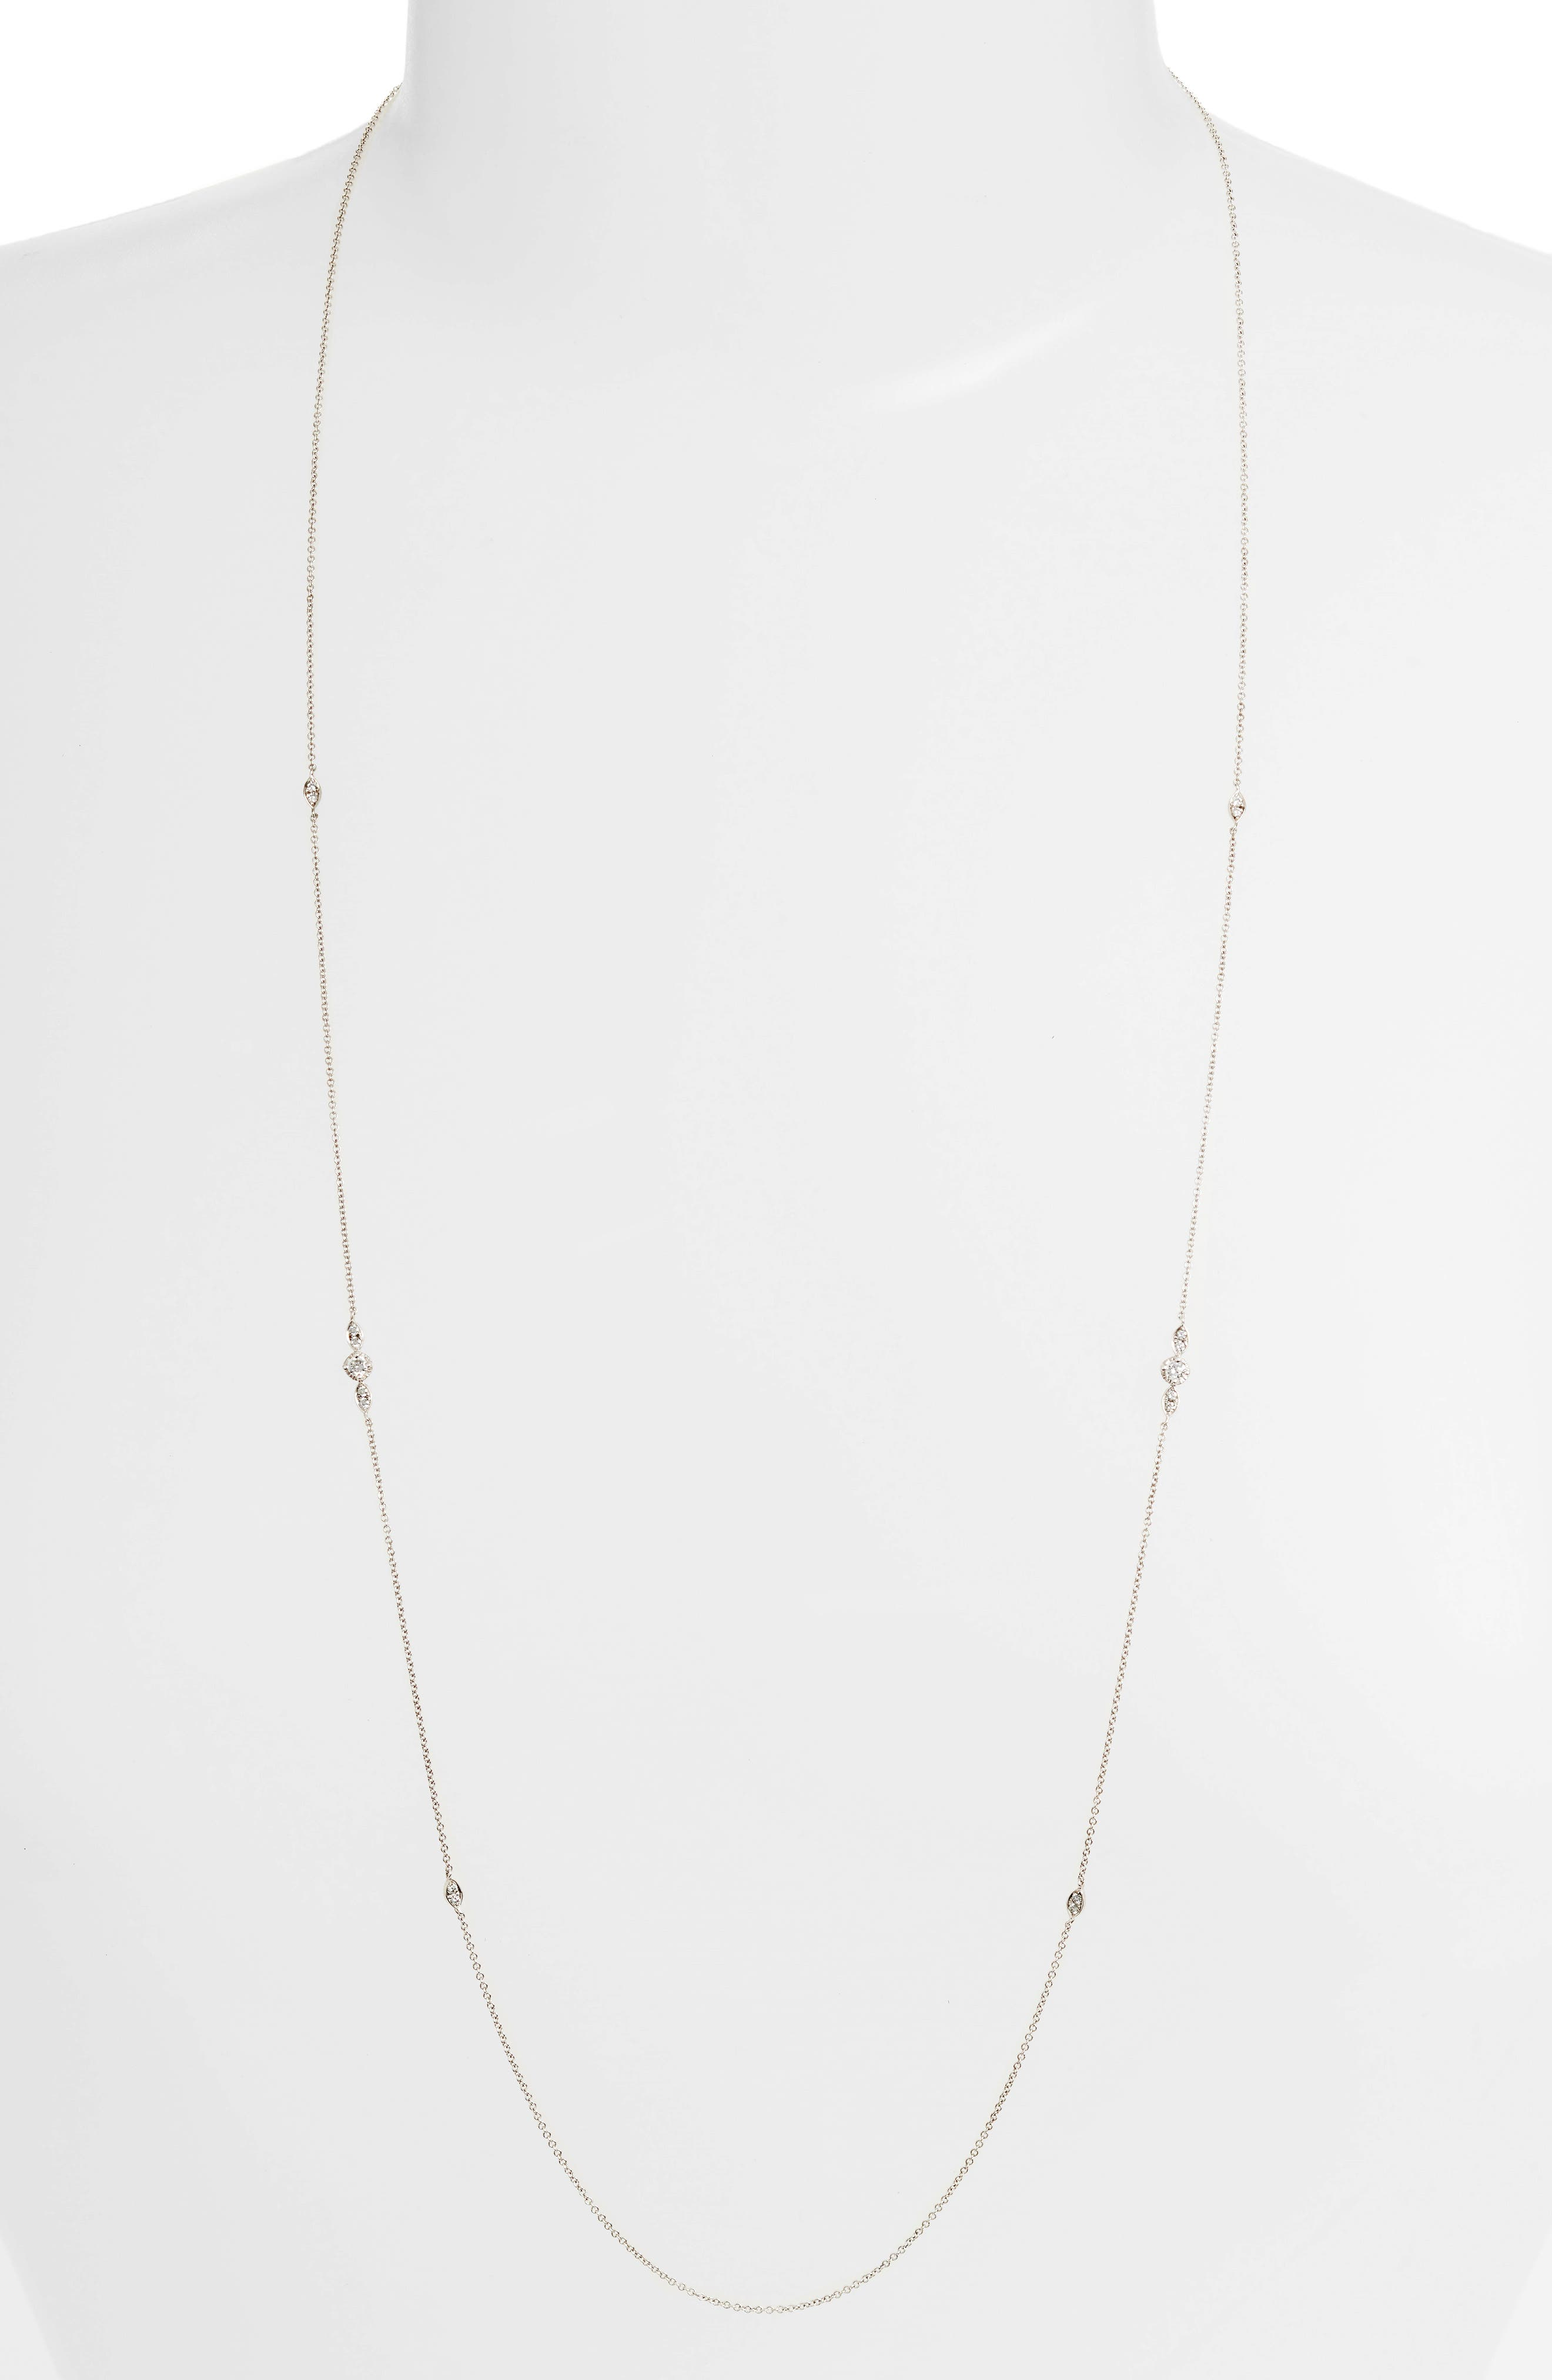 Mila Long Diamond Station Necklace,                         Main,                         color, White Gold